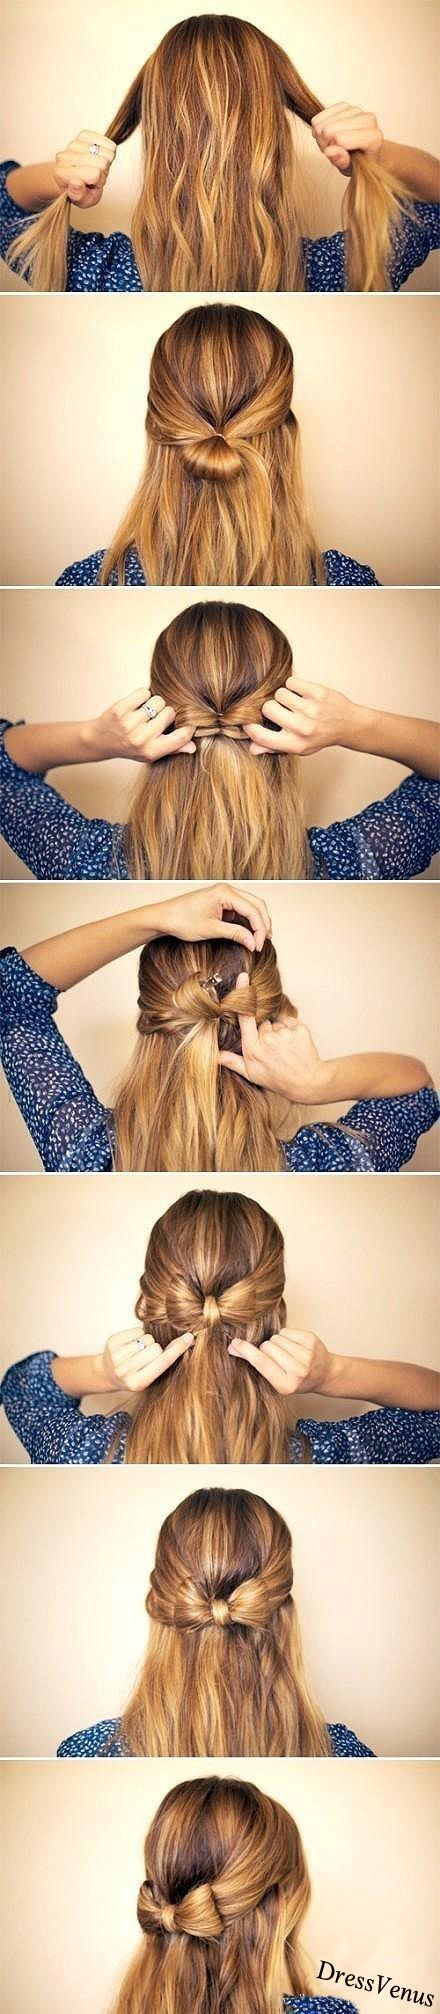 Beautiful Long Hair Style.